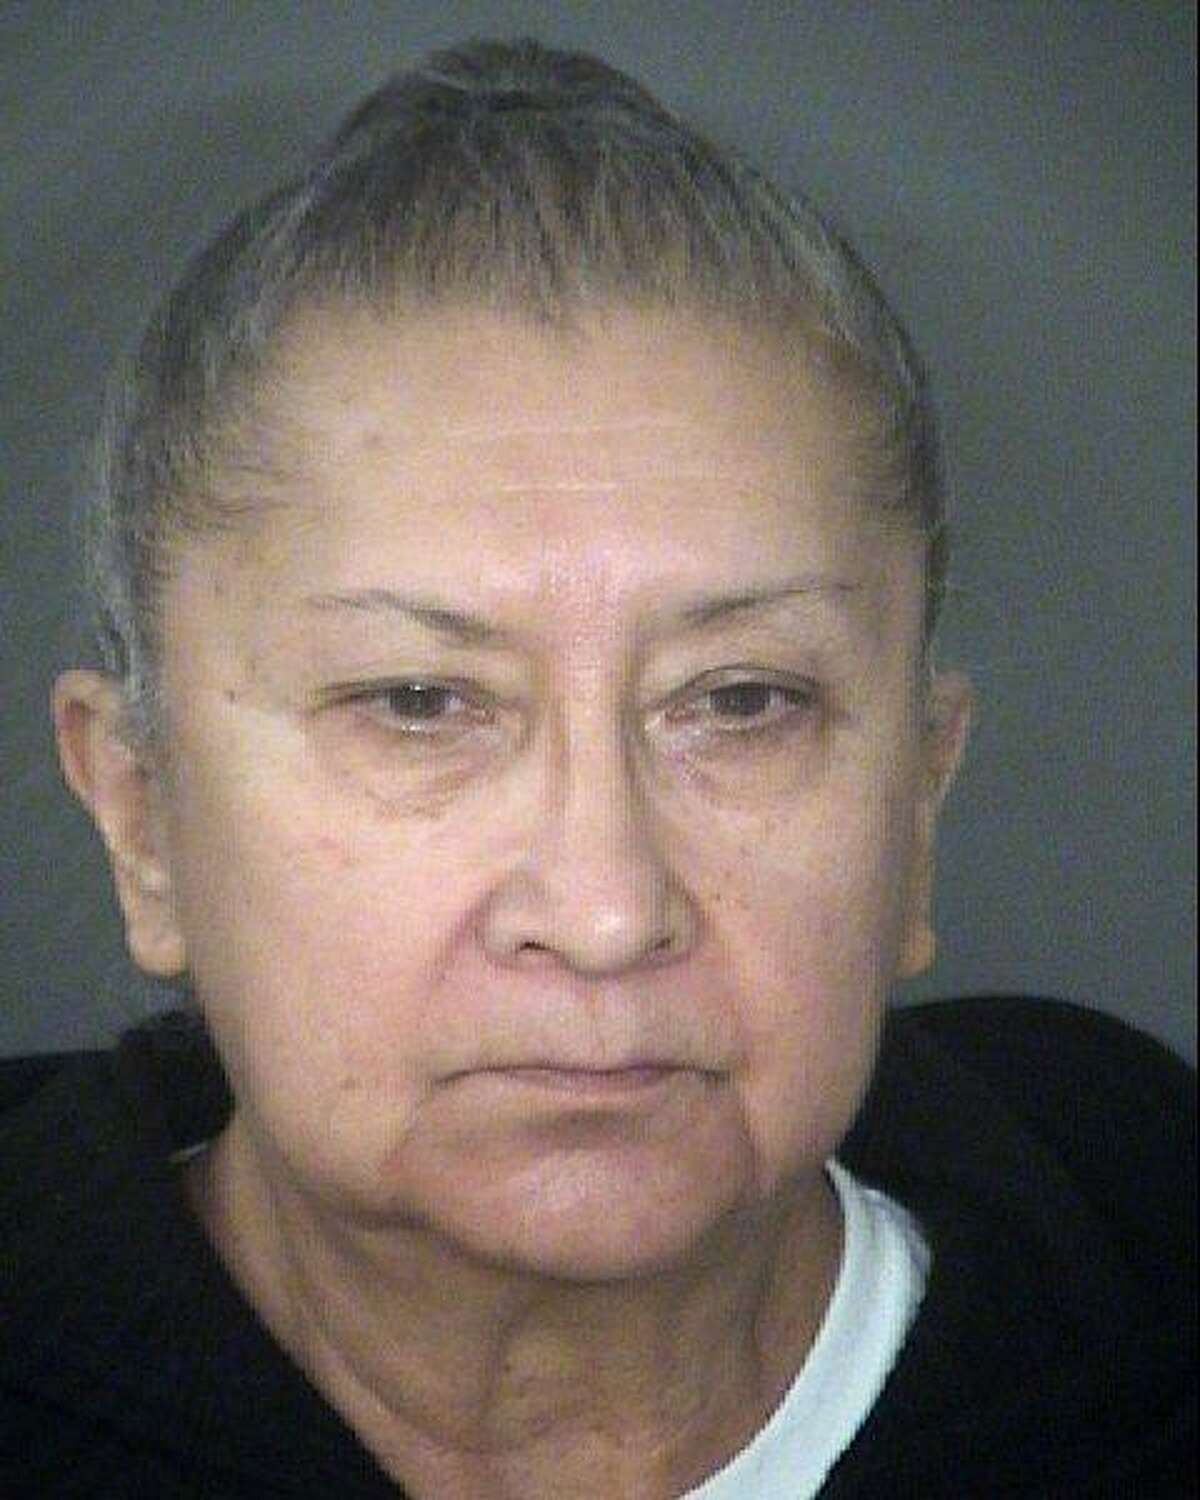 Rosa Elva Davila, driving while intoxicated 3rd or more